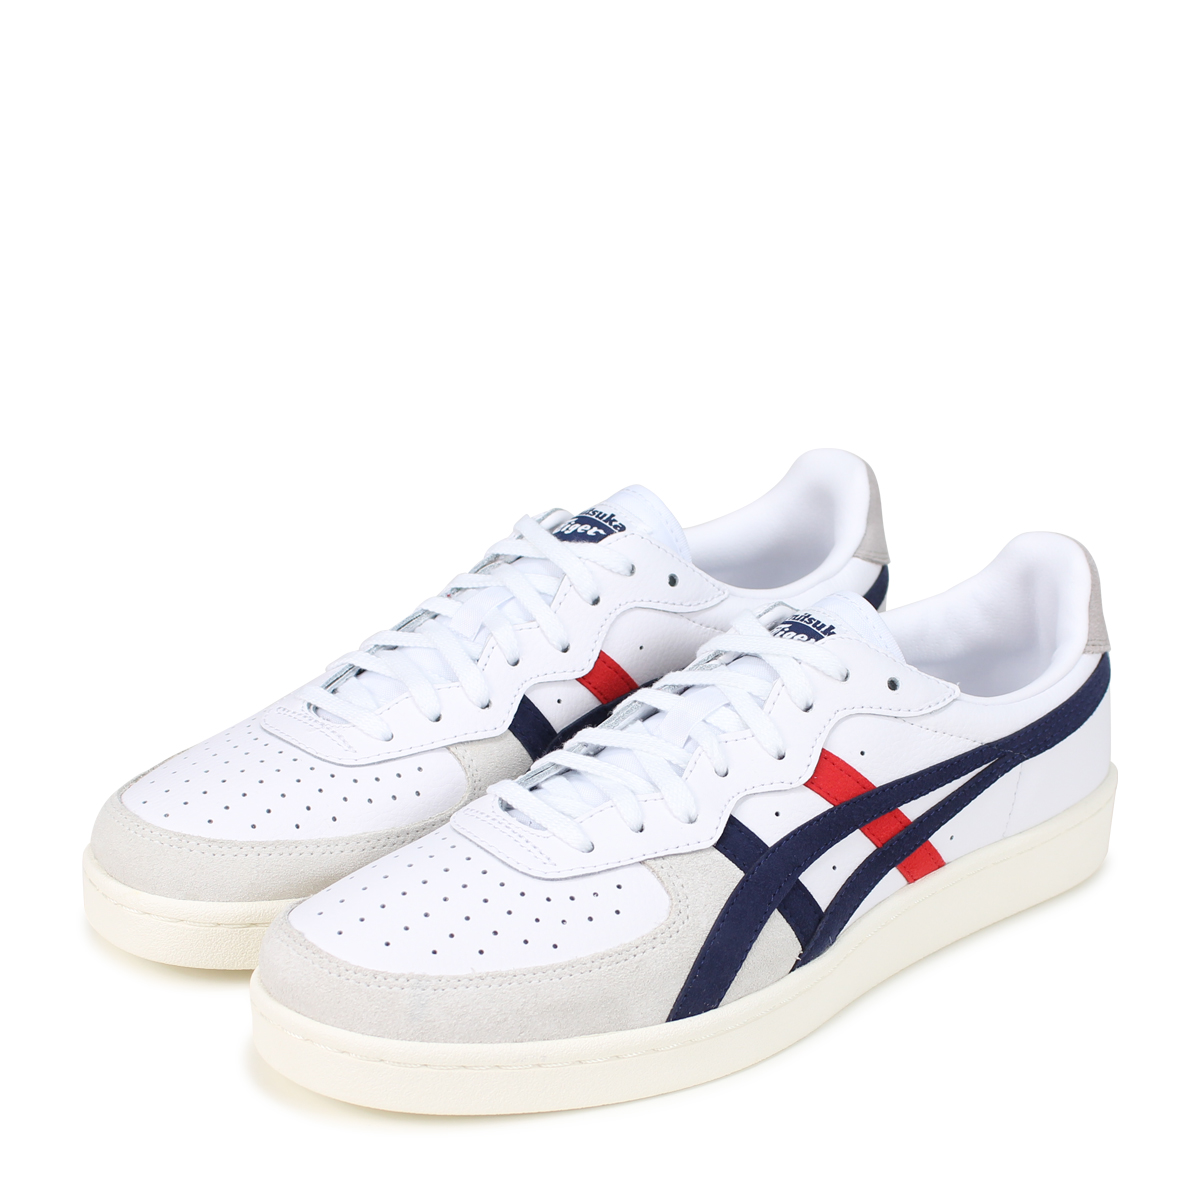 info for d5036 975cf Onitsuka Tiger GSM Onitsuka Thailand ghazi S M men sneakers TH5K2Y-100  white [8/2 Shinnyu load] [187]